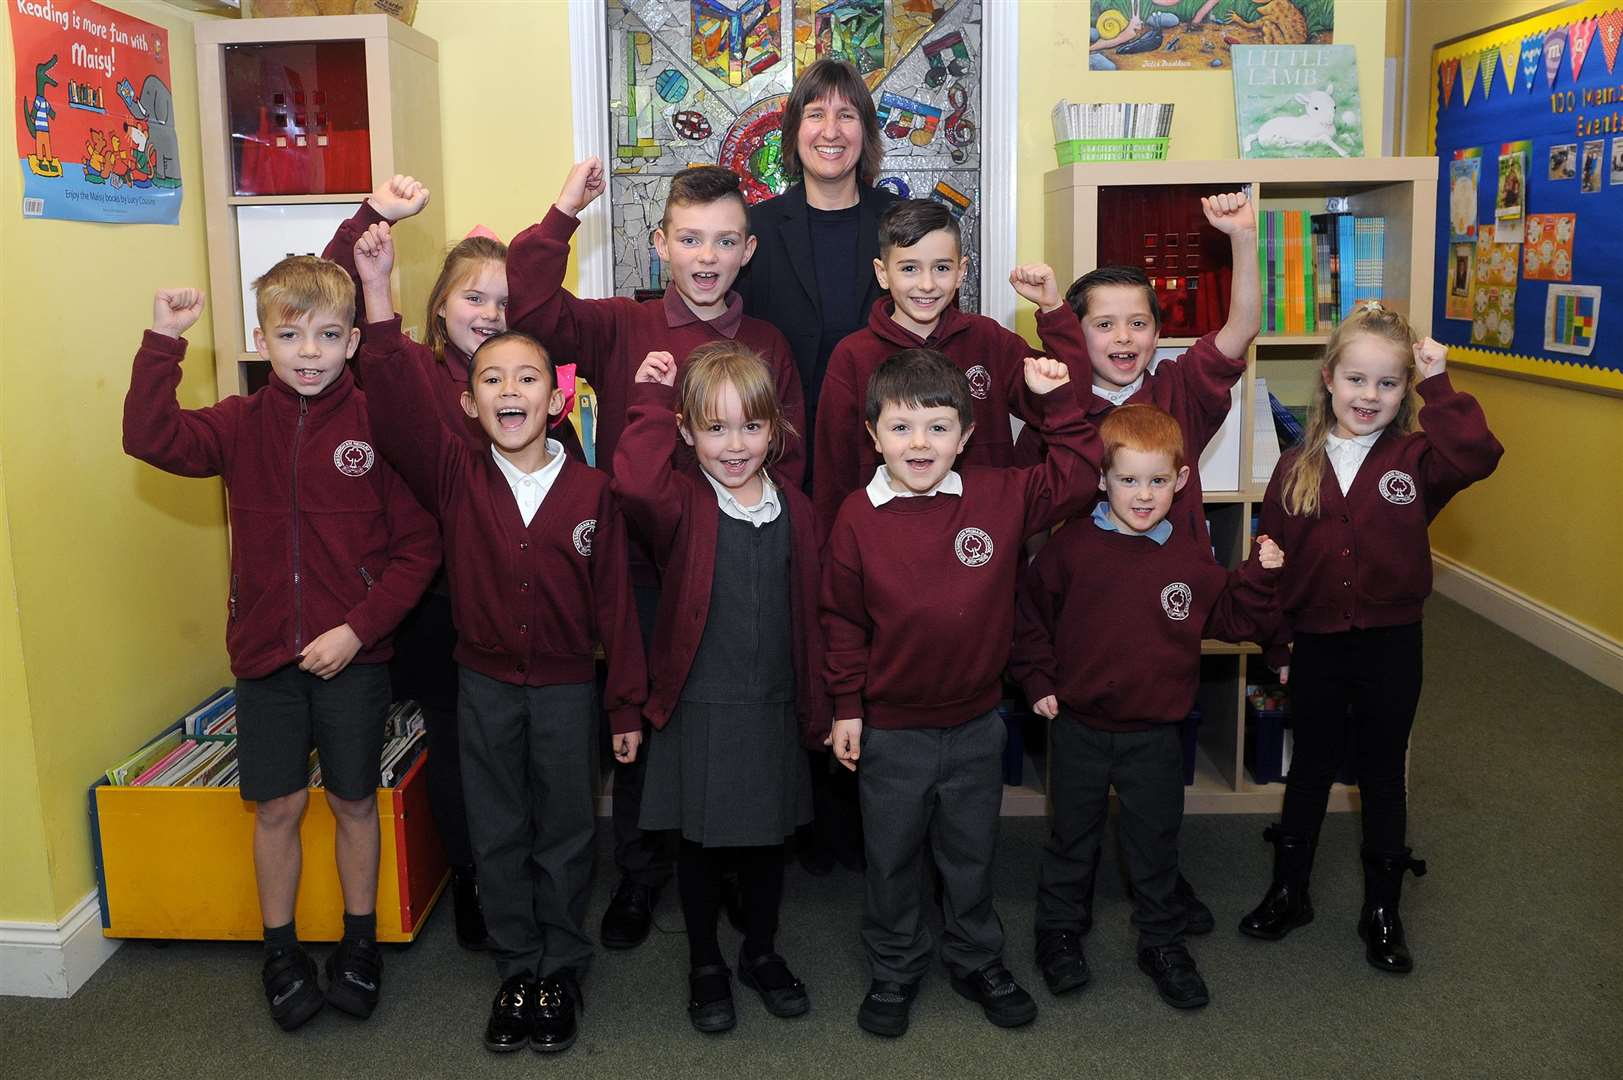 CELEBRATING: Children and staff at Bressingham Primary School are happy about the latest Ofsted report. Picture by Mecha Morton.